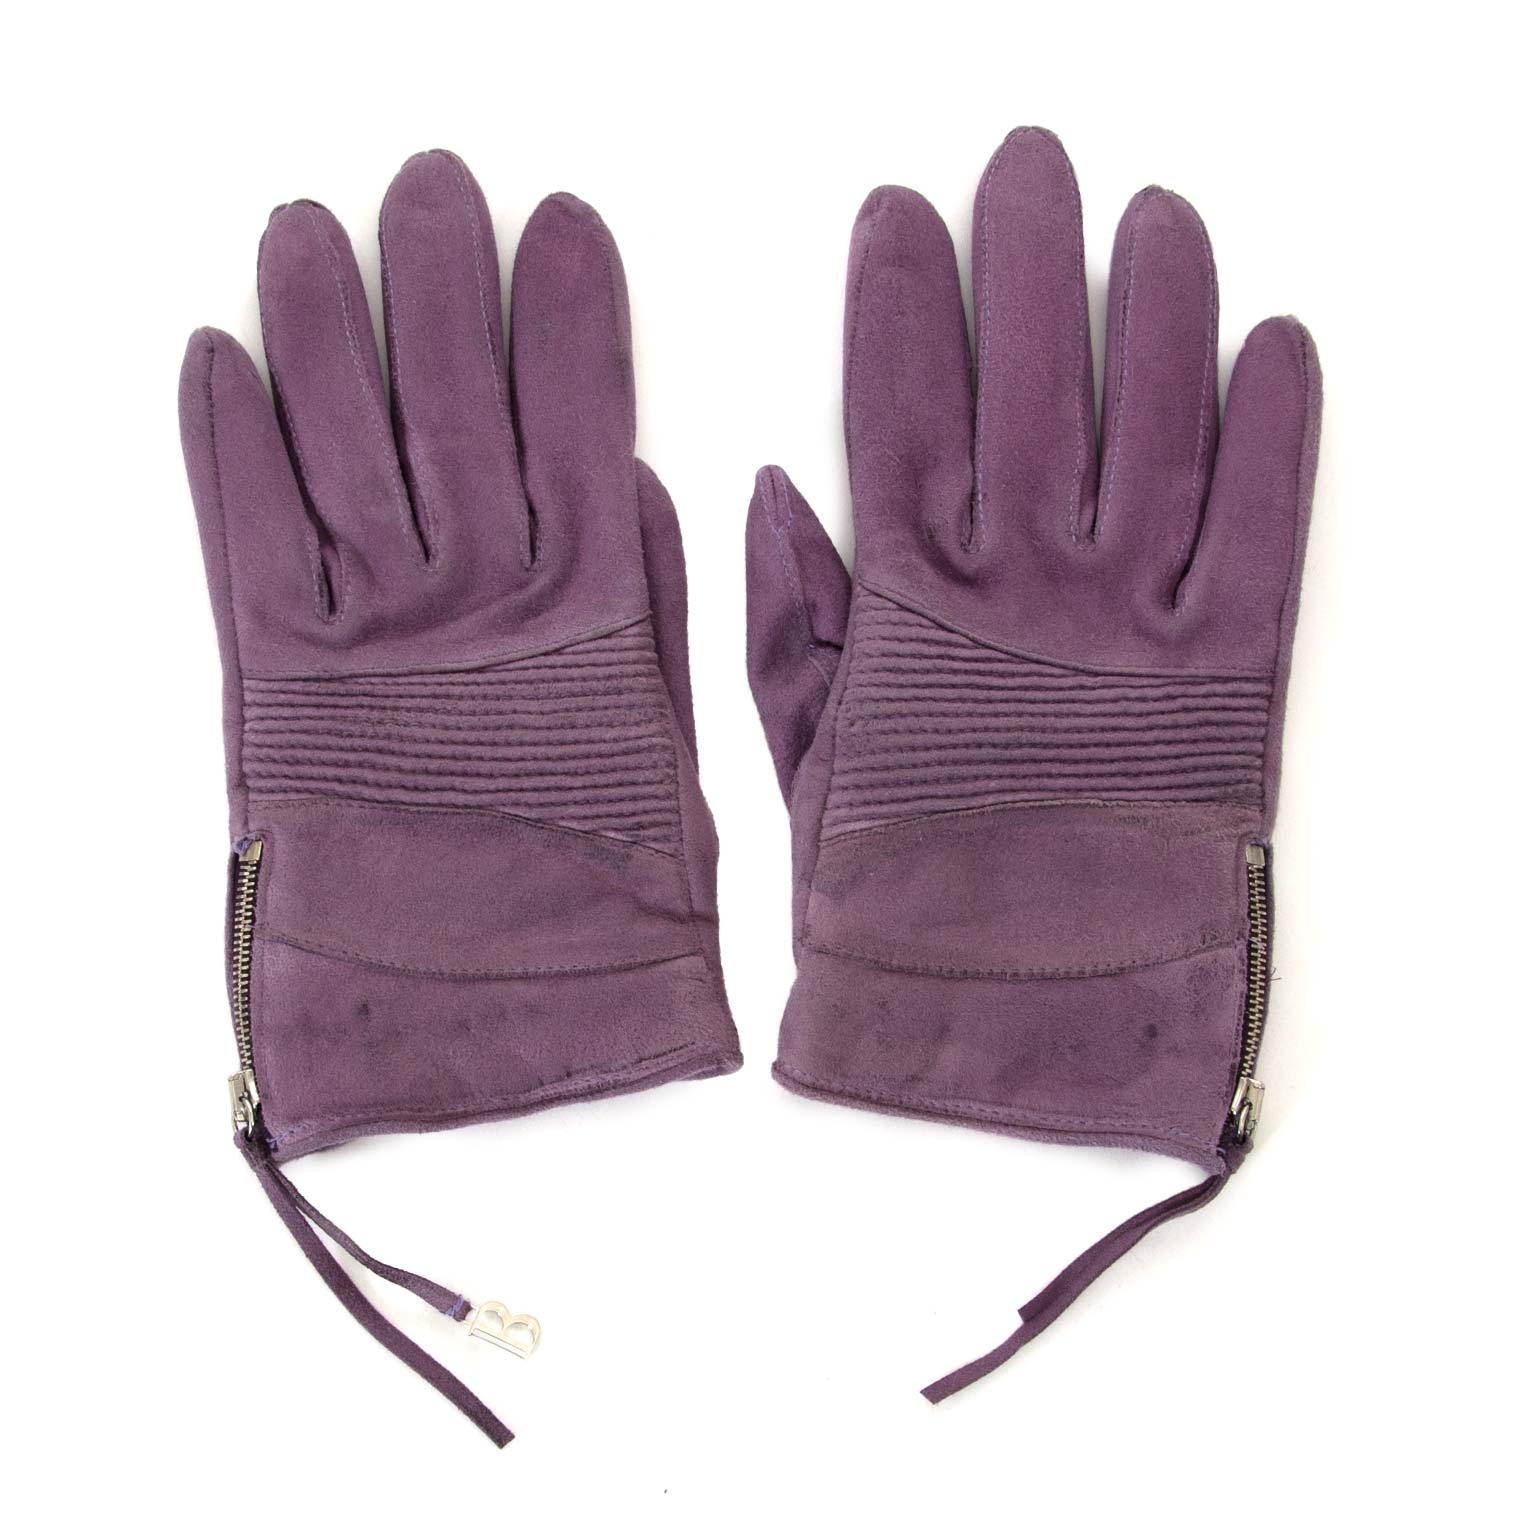 Looking for a pair of Balmain Purple Suede Nubuck Gloves for small hands?